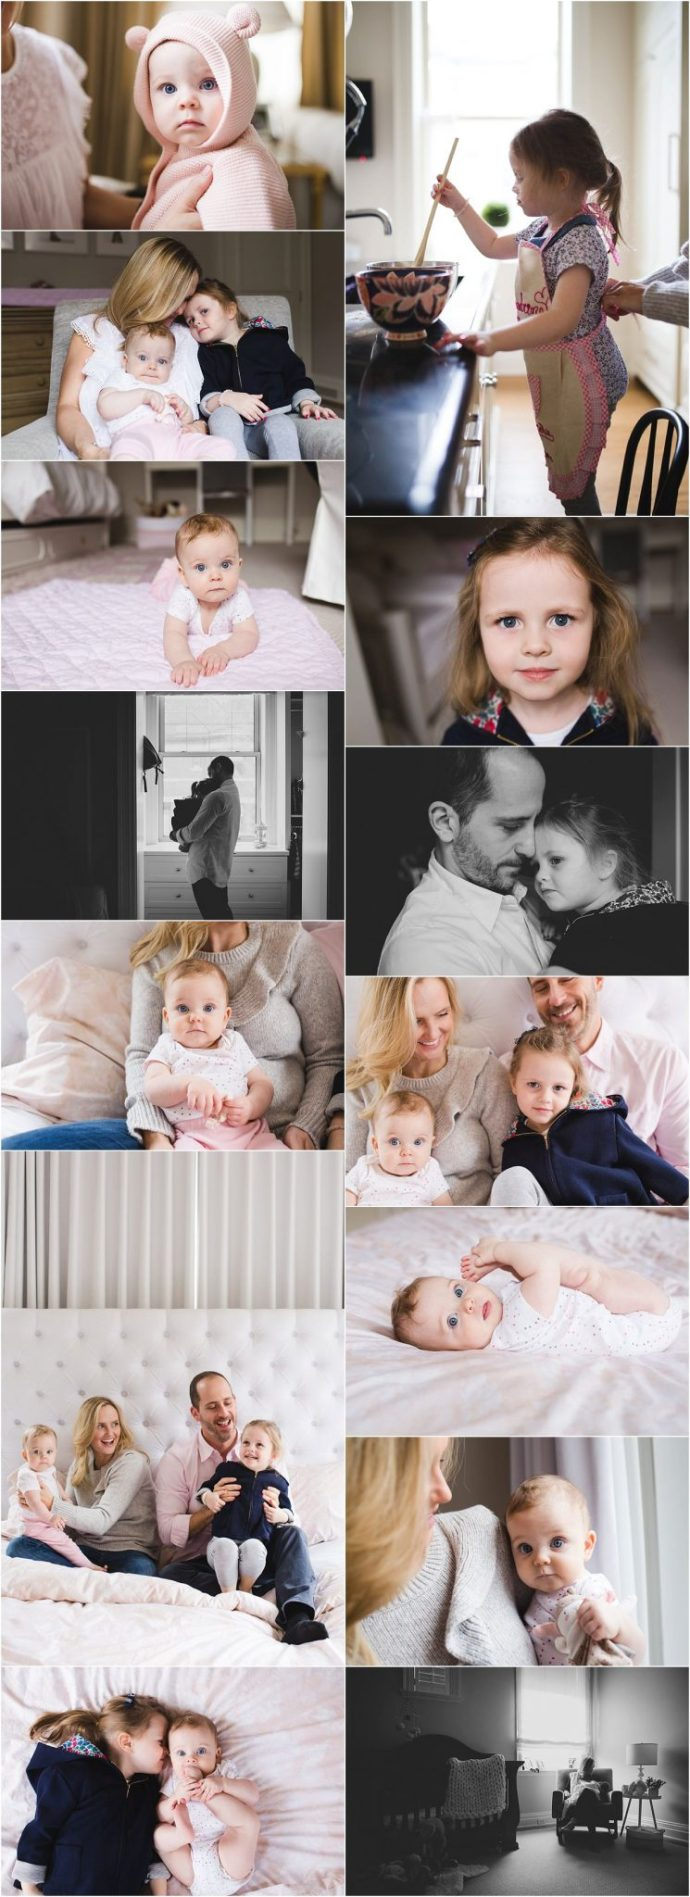 Lifestyle Photography | Michelle Little Photography, Montreal, Quebec, Canada